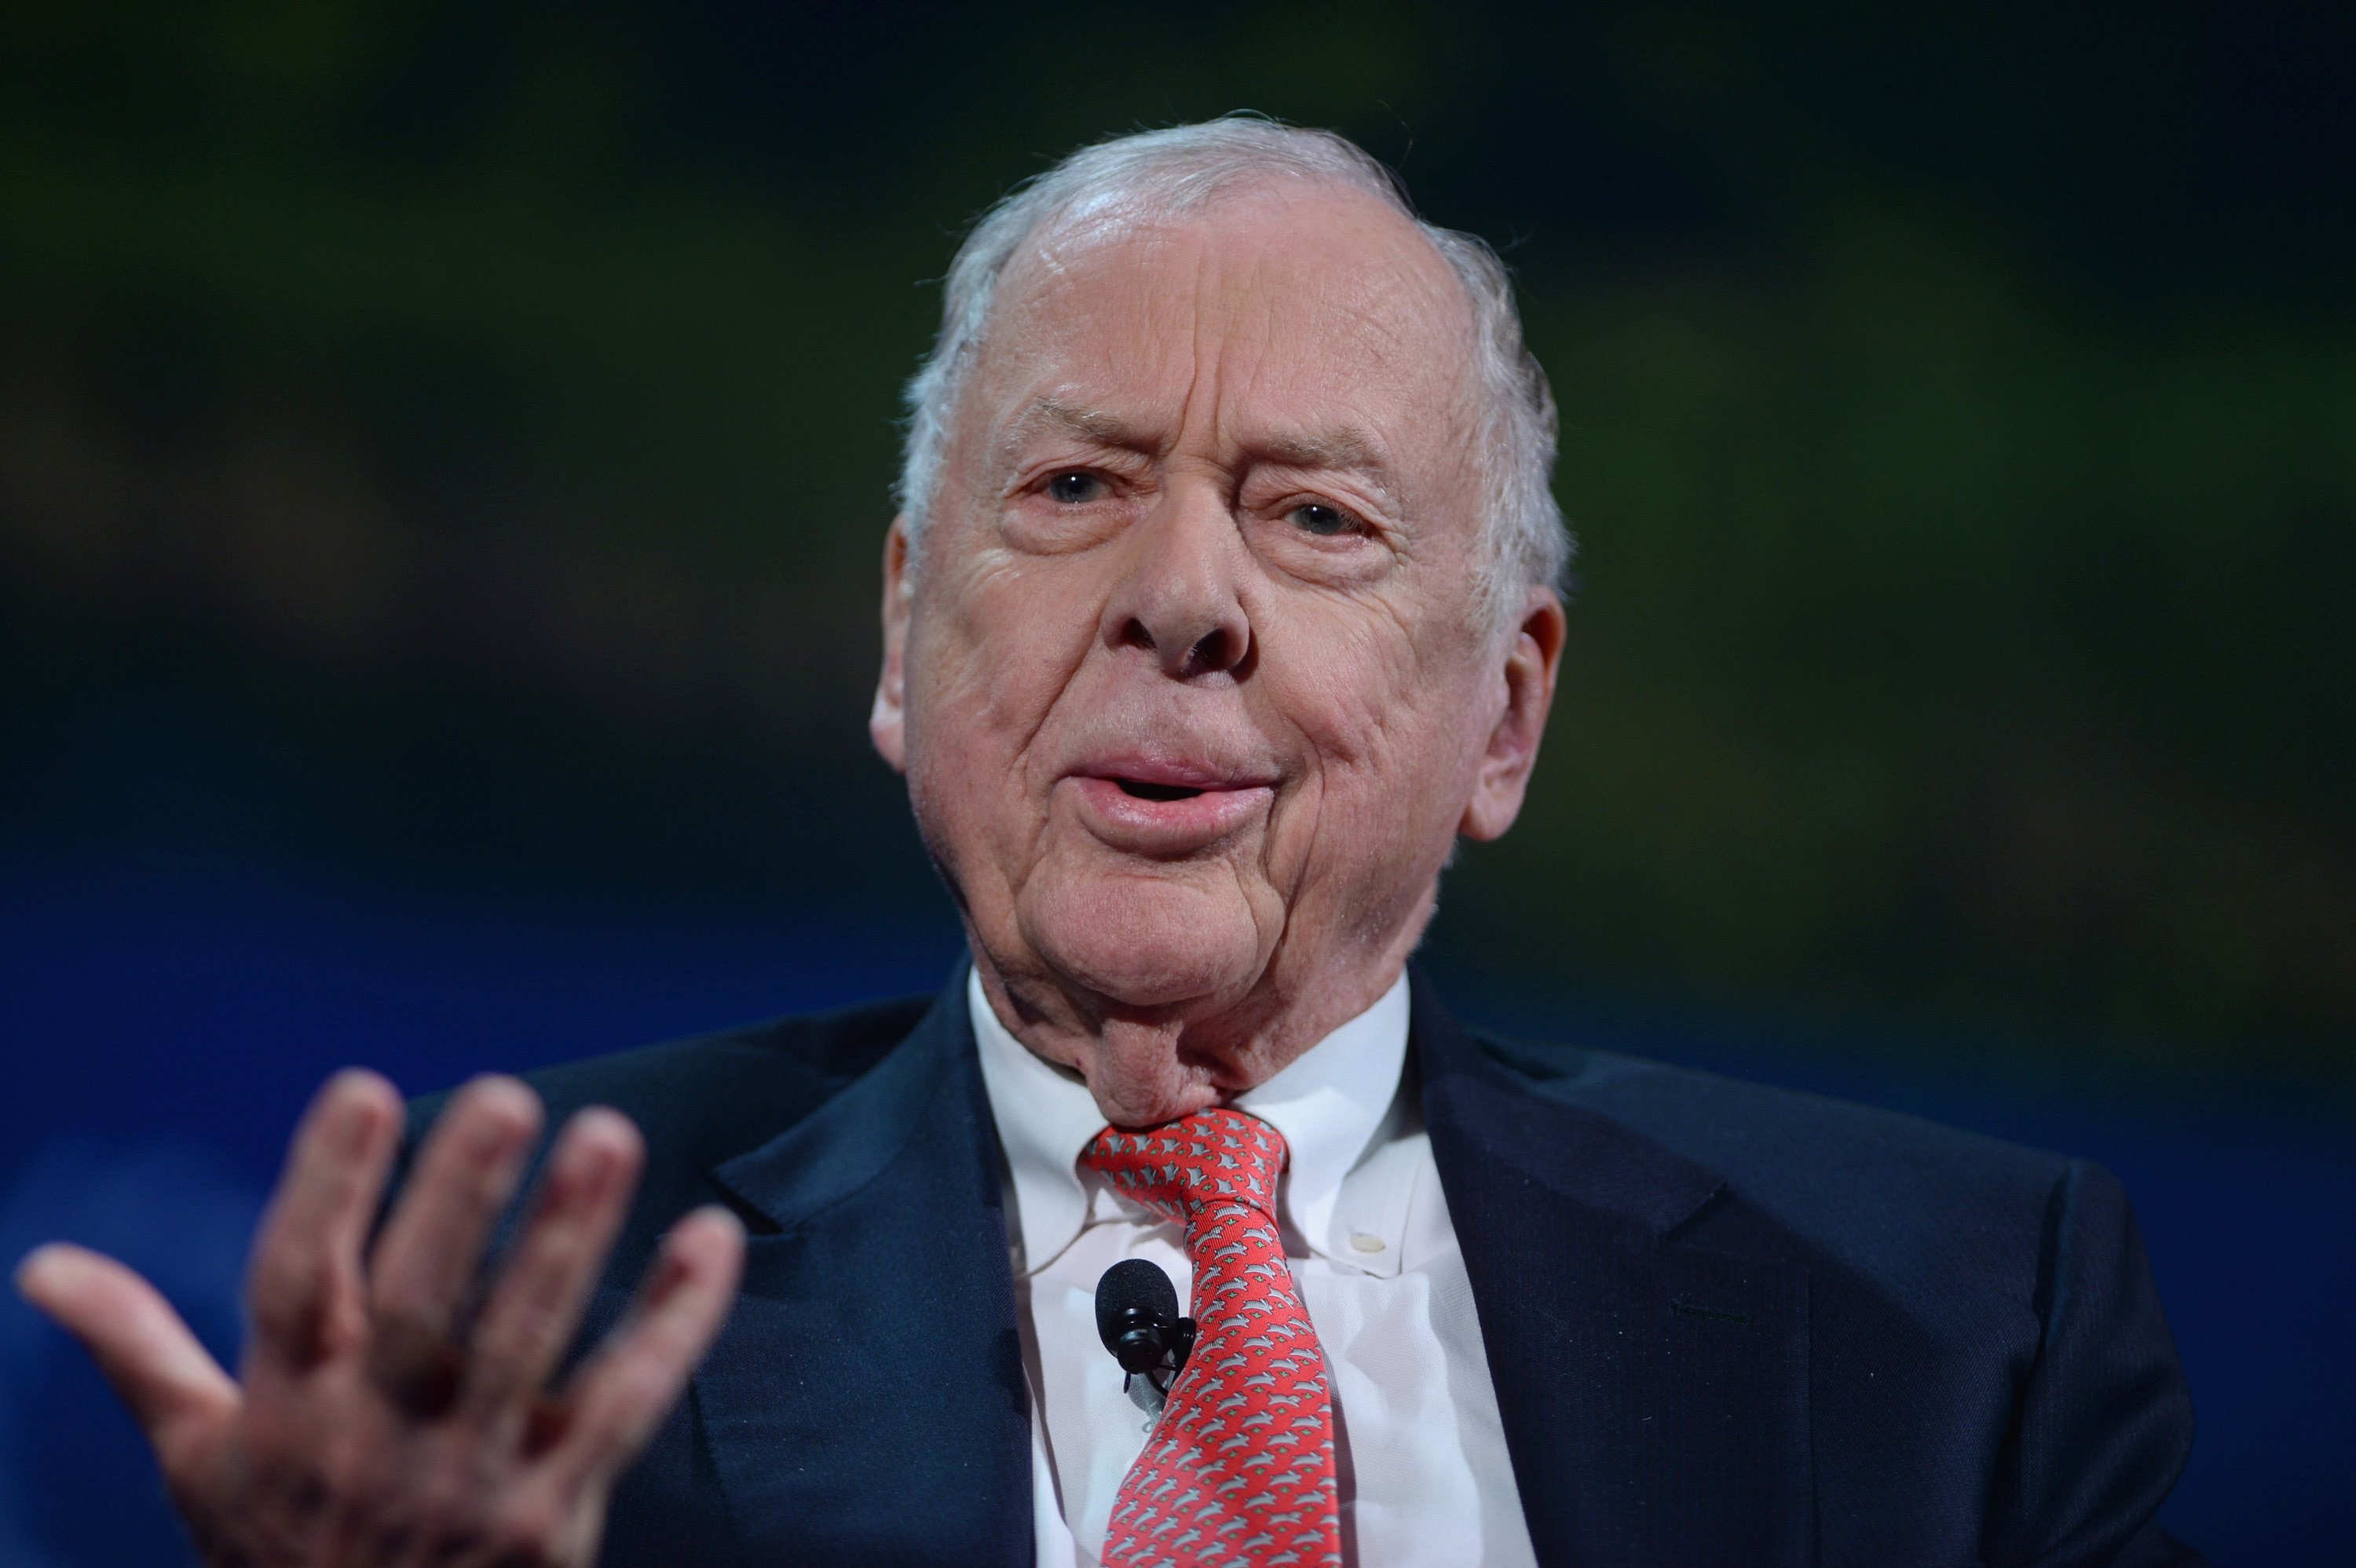 Texas oil tycoon Pickens closing energy hedge fund